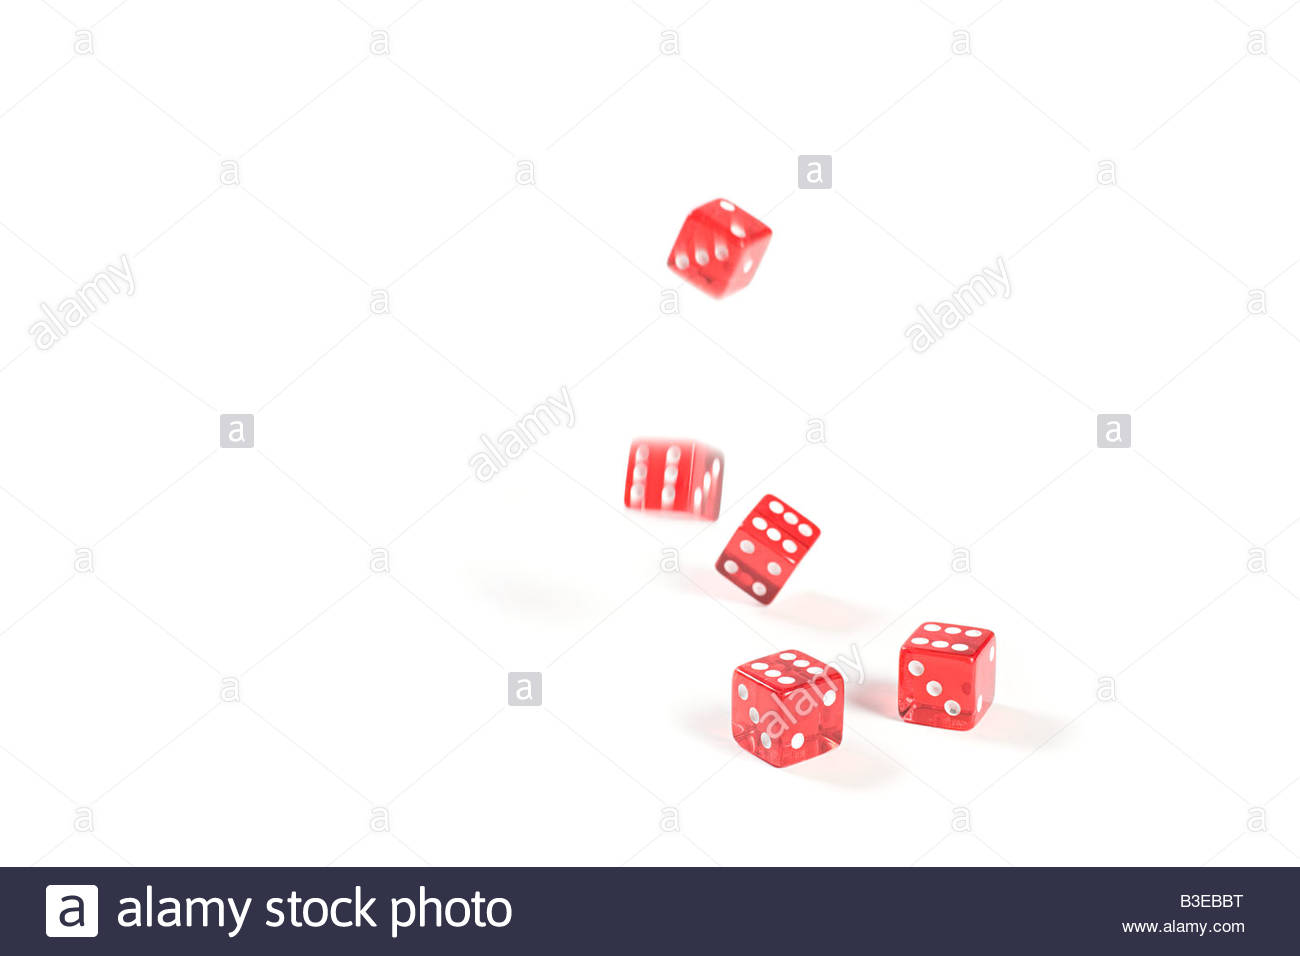 Five dice rolling - Stock Image